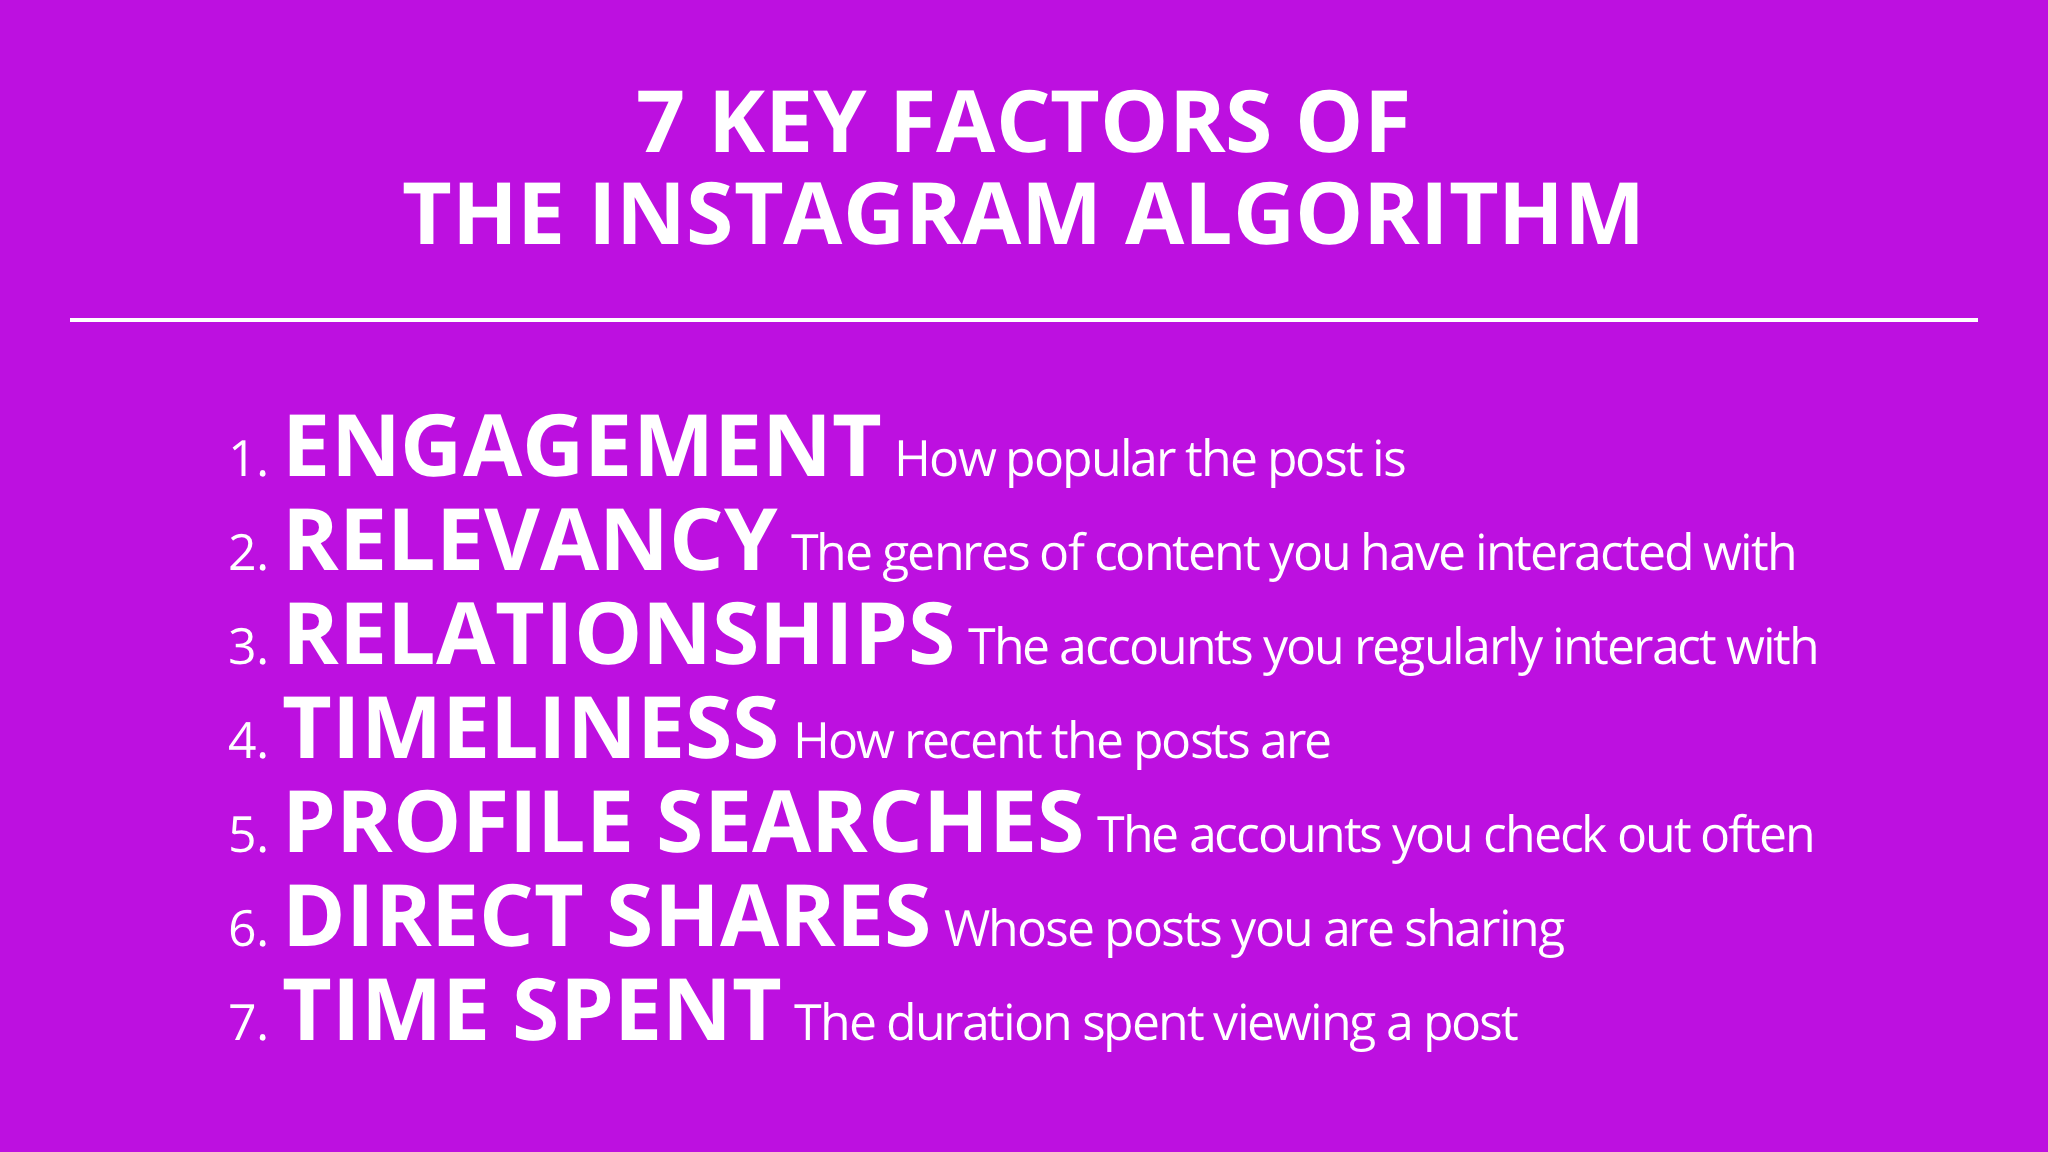 the key factors of instagram algorithm